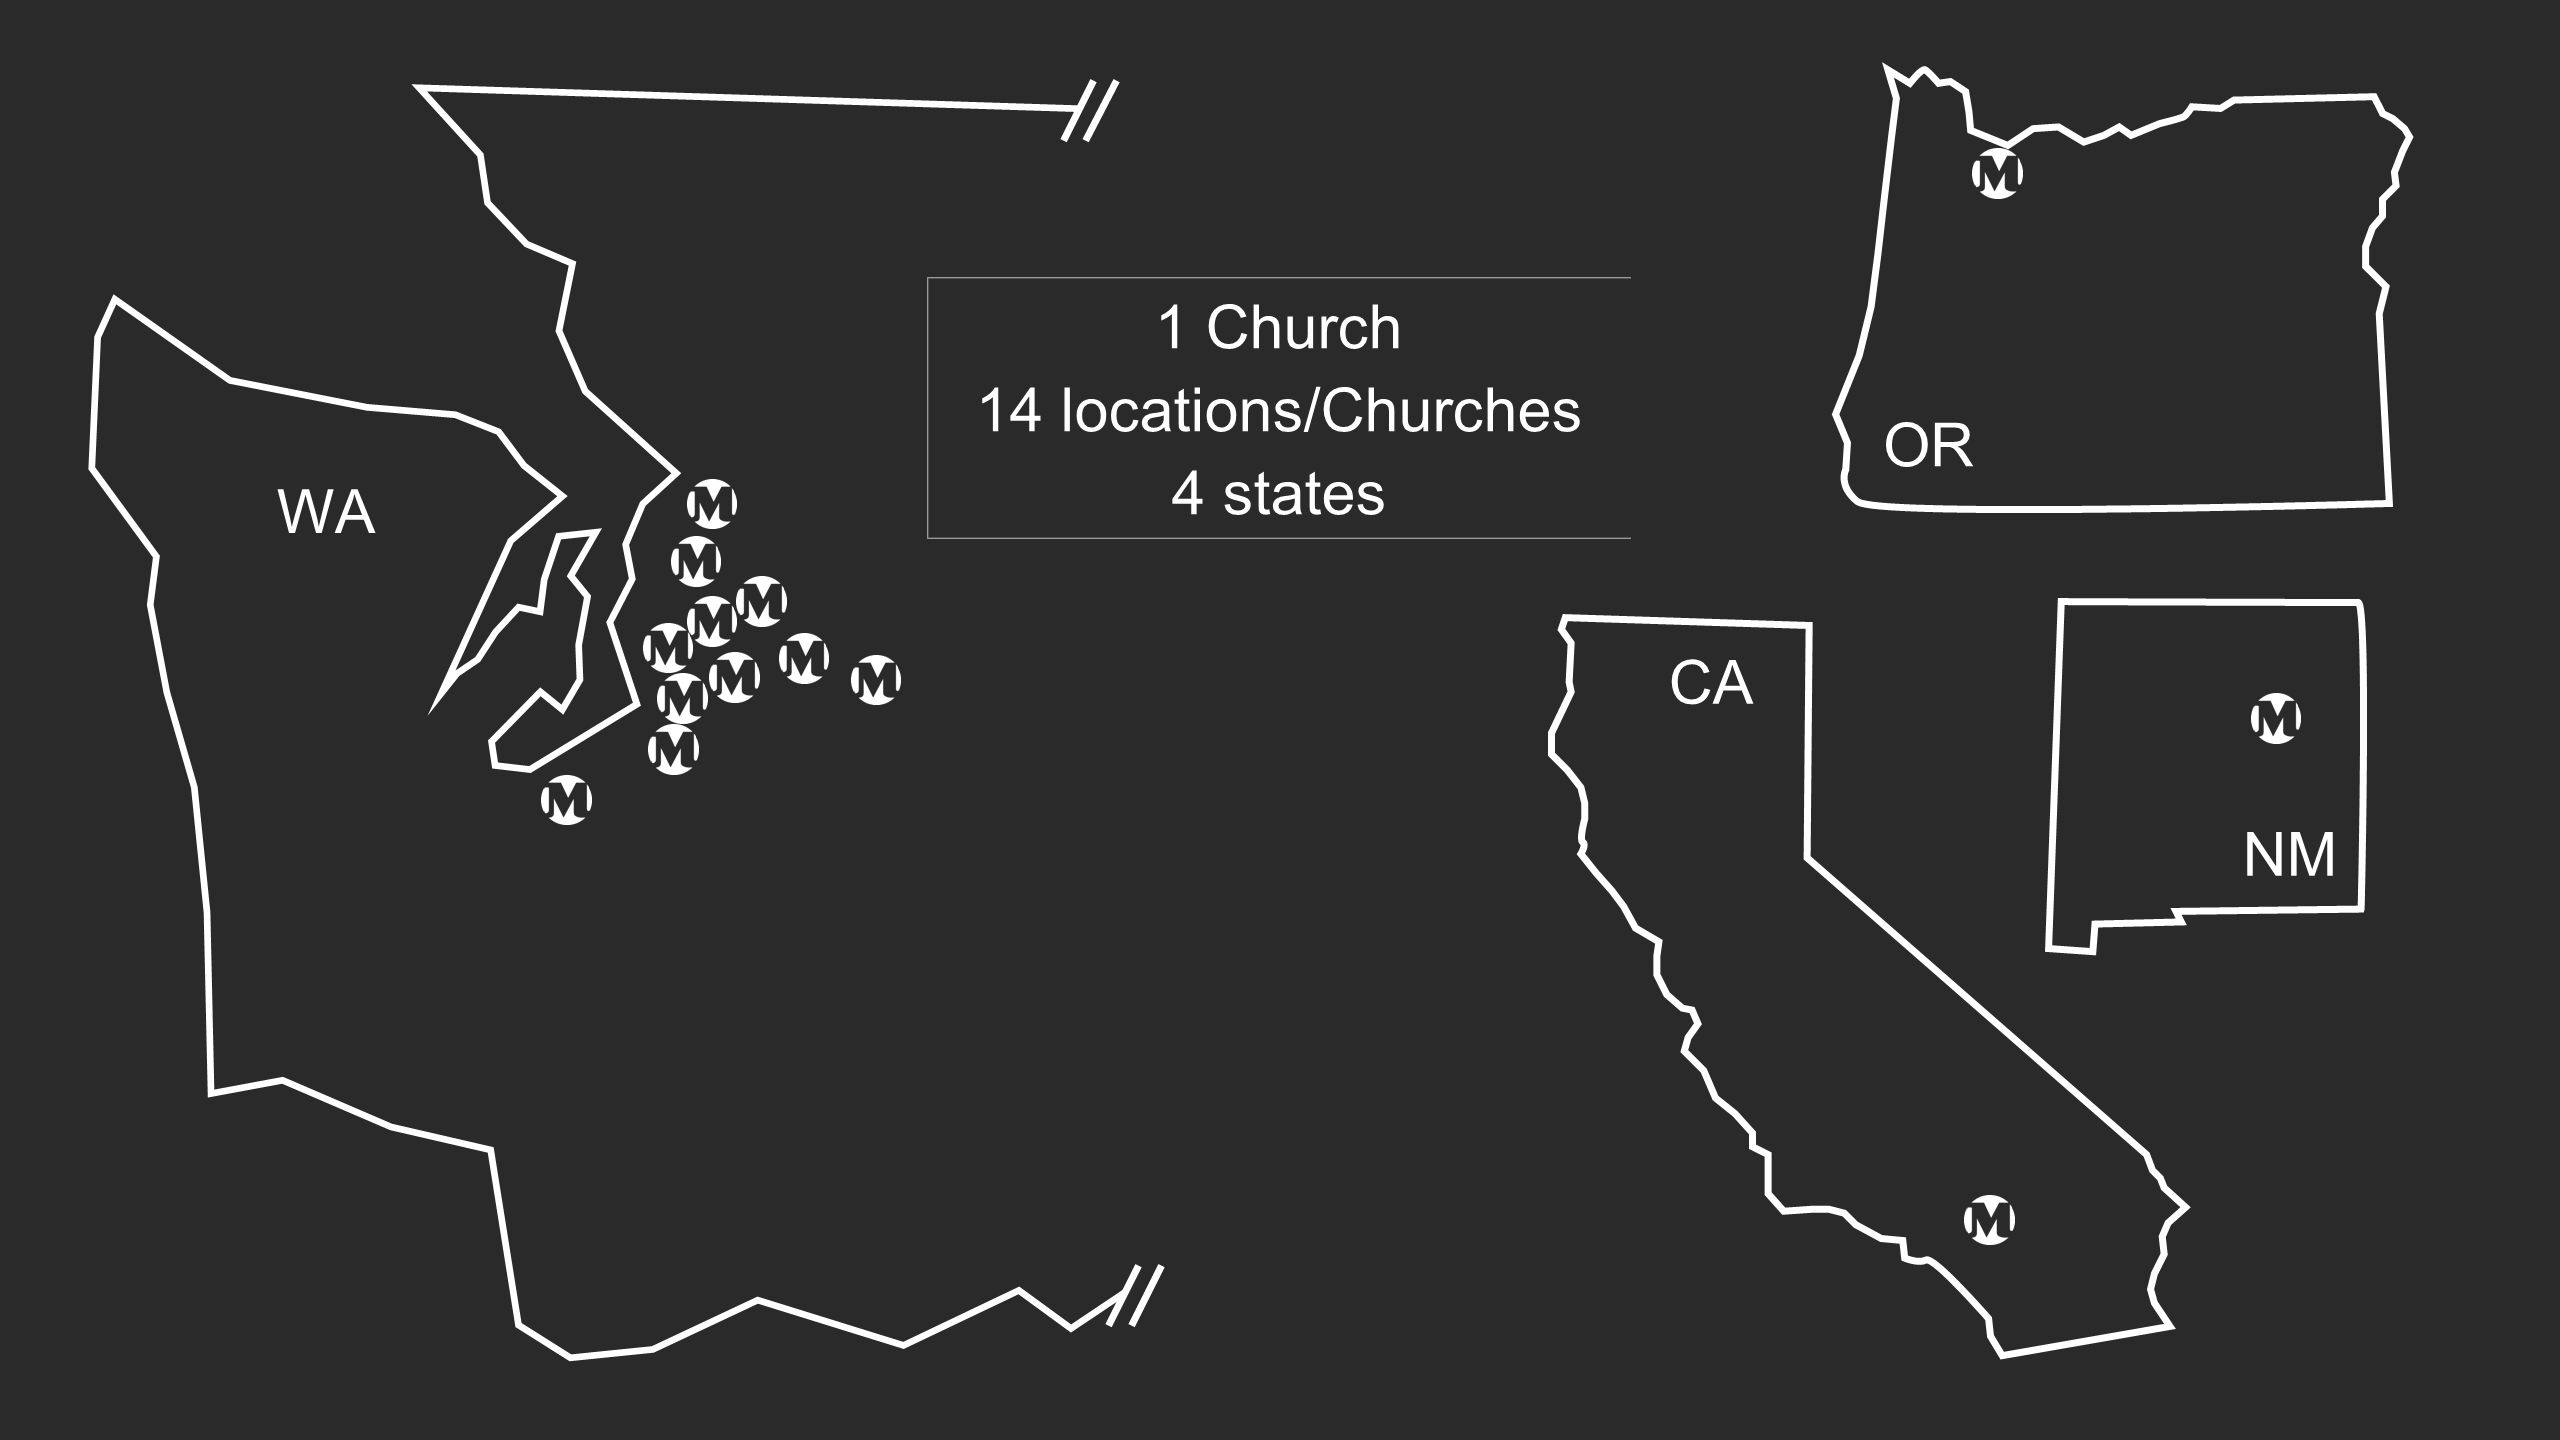 WA NM CA OR 1 Church 14 locations/Churches 4 states